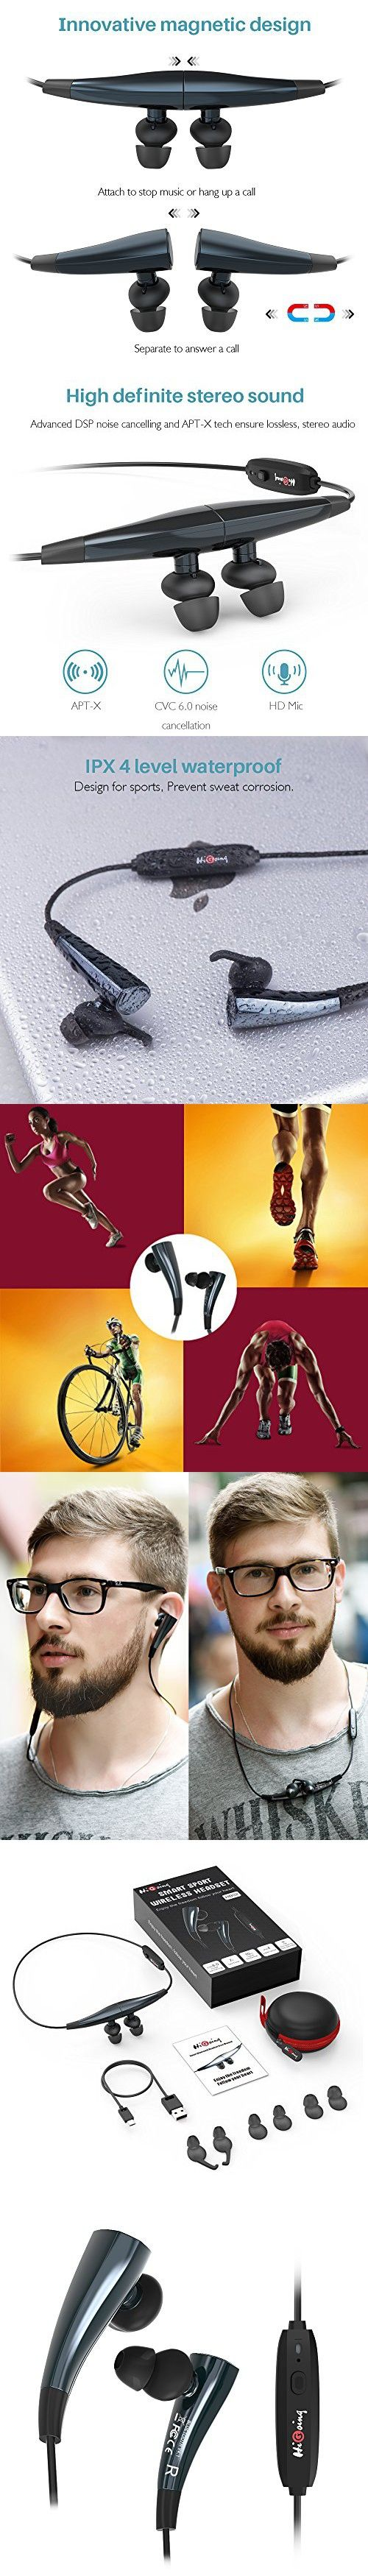 Wireless Bluetooth Headphones, HiGoing Magnetic Workout Cordless Earbuds Waterproof Running Earphones with Mic CVC6.0 Noise Cancelling Headset -HB02